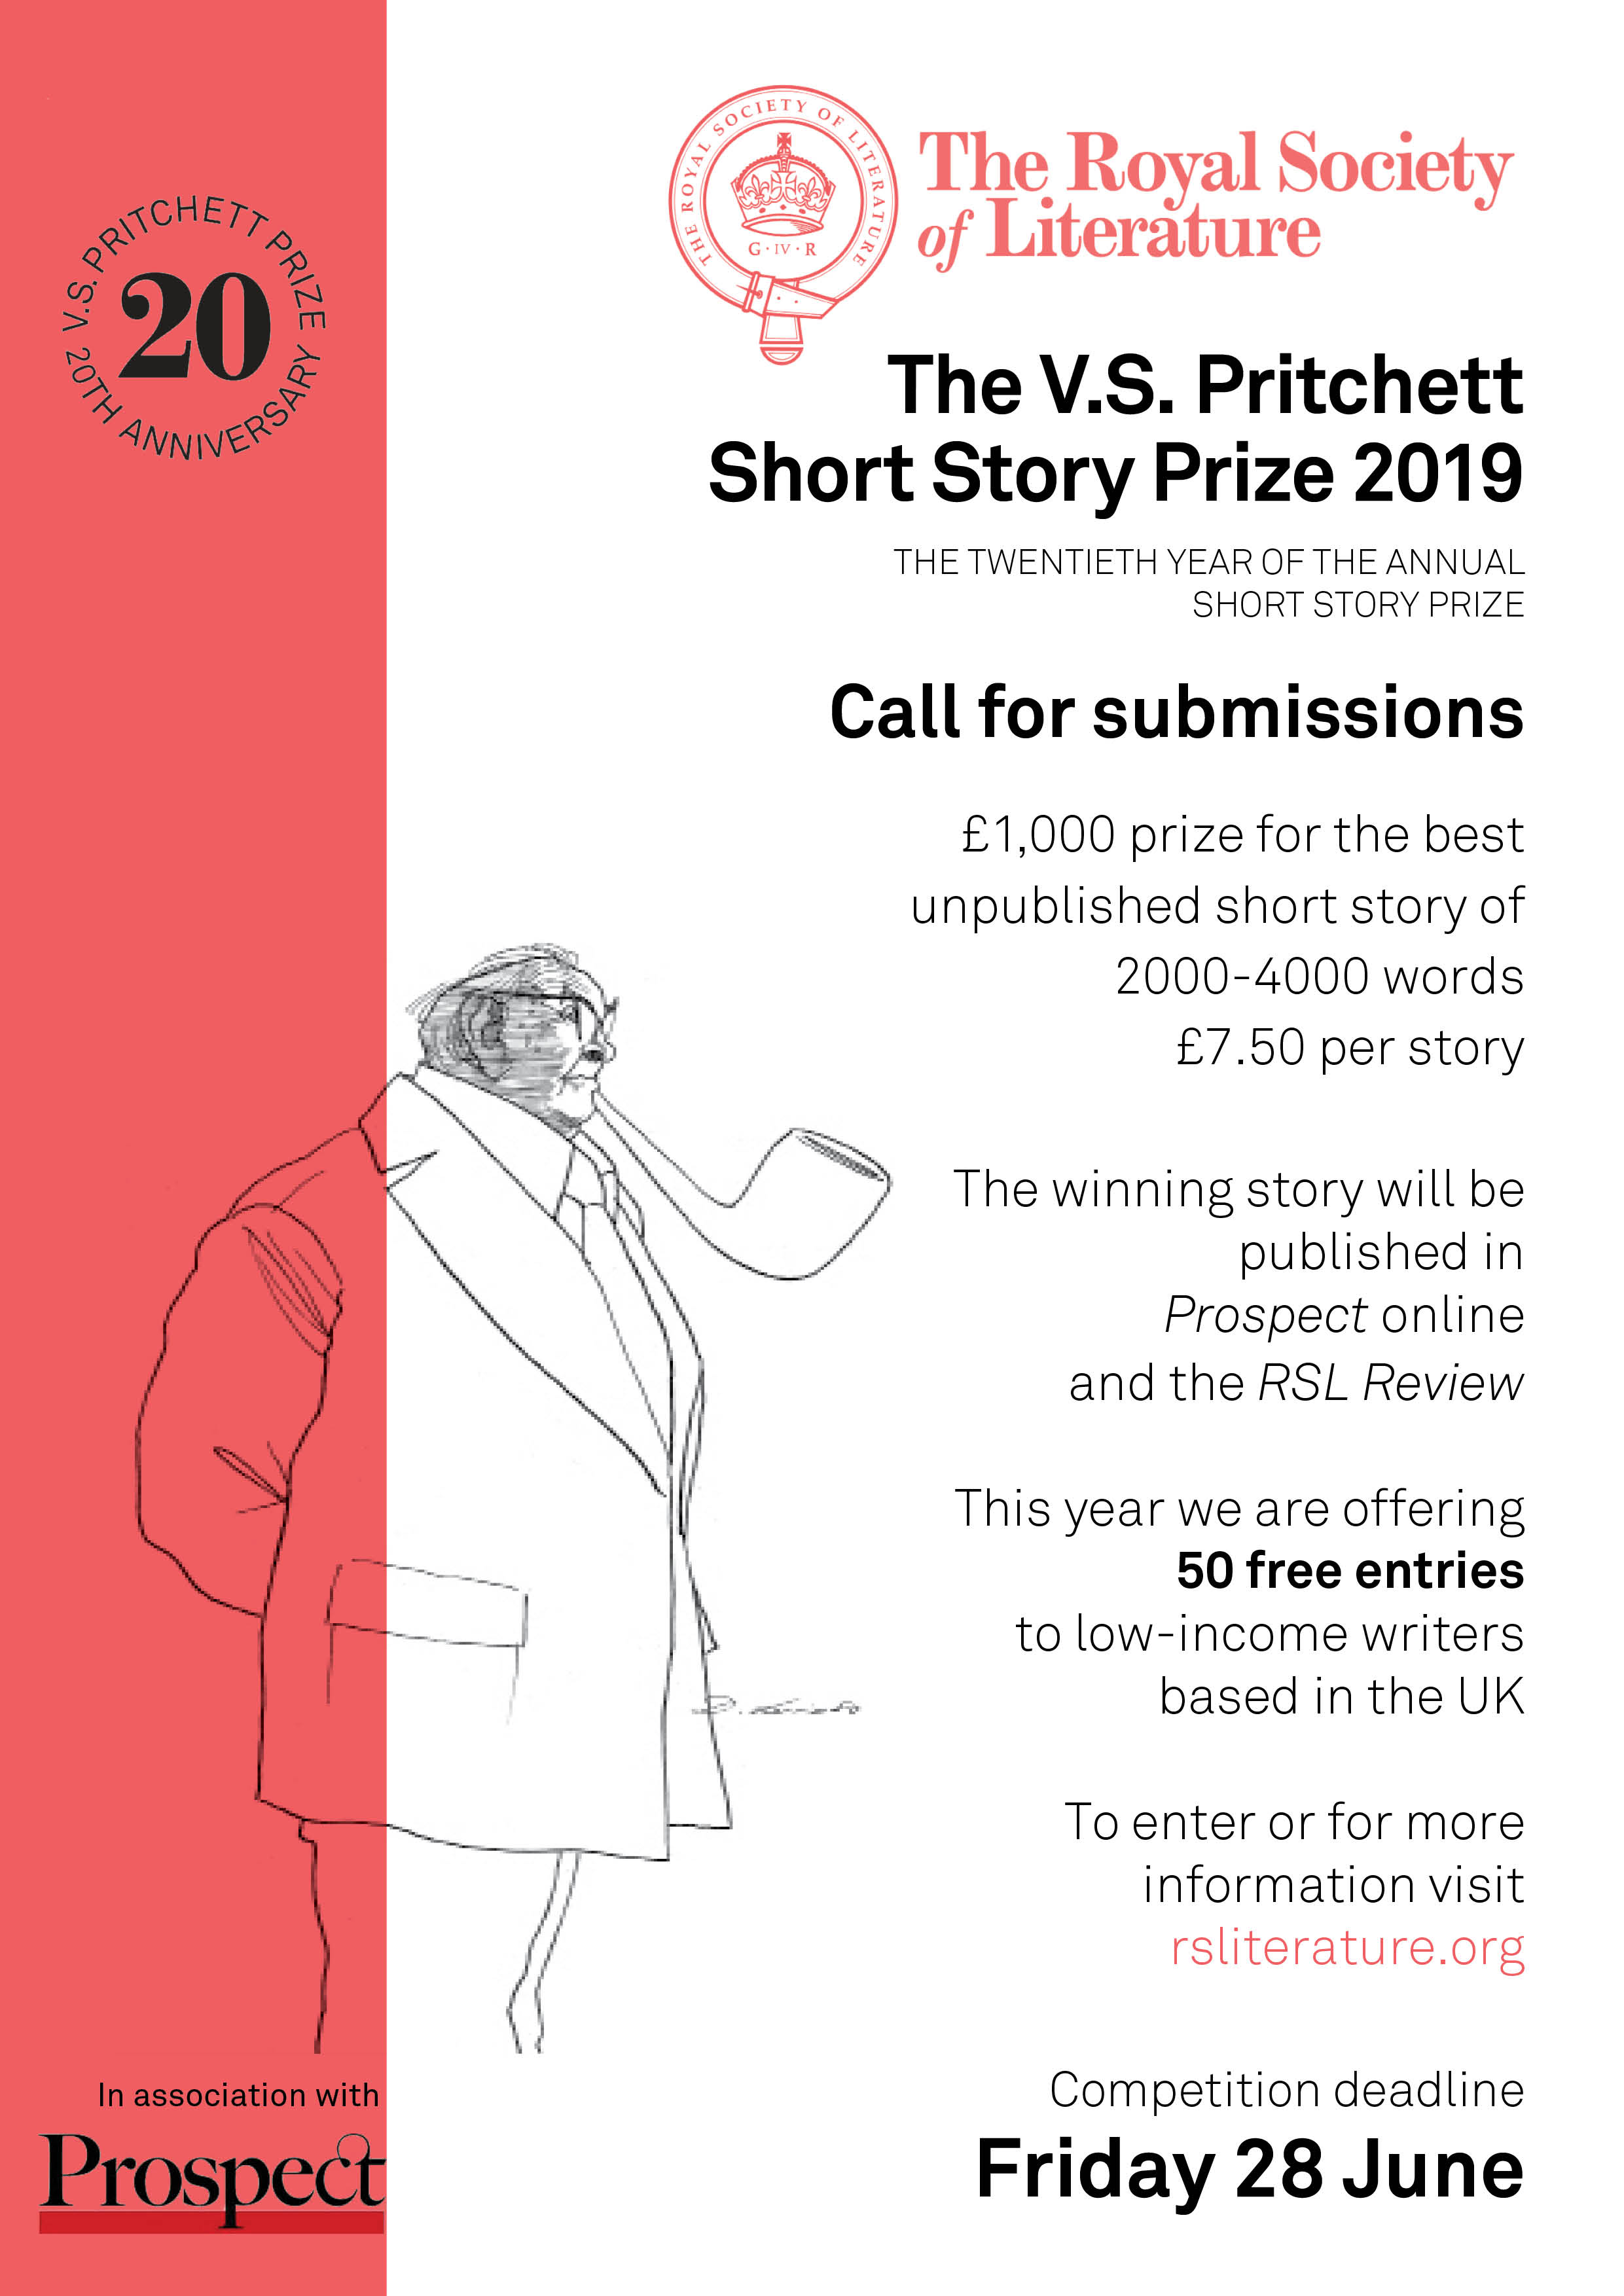 7 Short Story Contests You Should Enter This Season